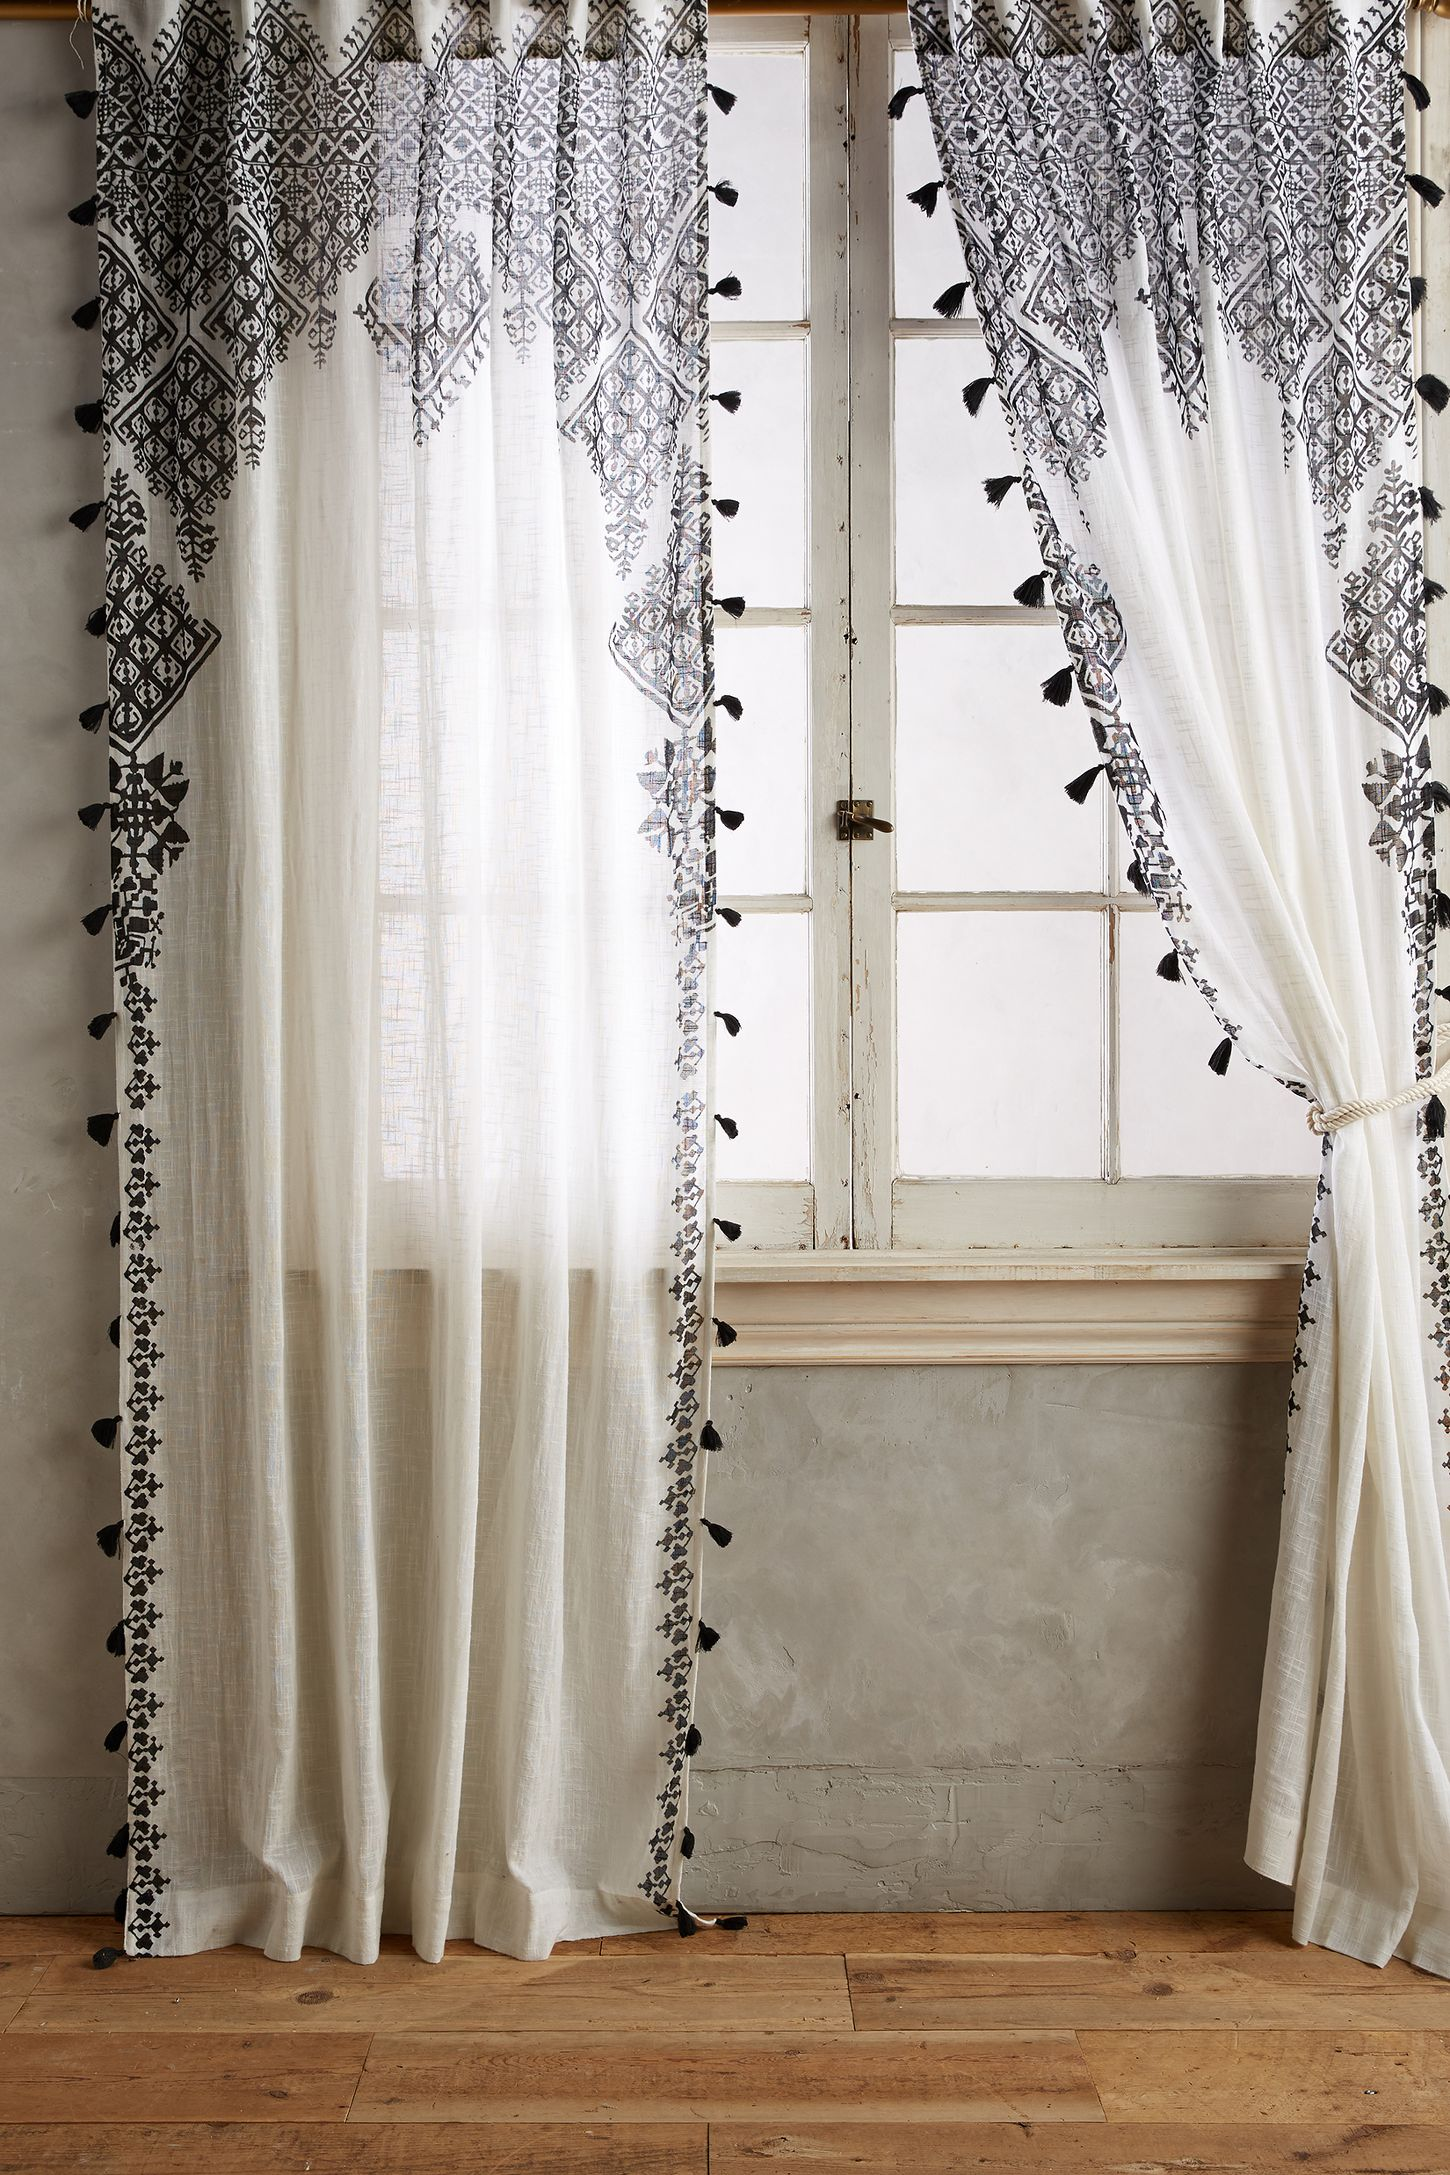 drapery in depot curtains window the drapes home curtain blinds where stores p treatments philadelphia and pa